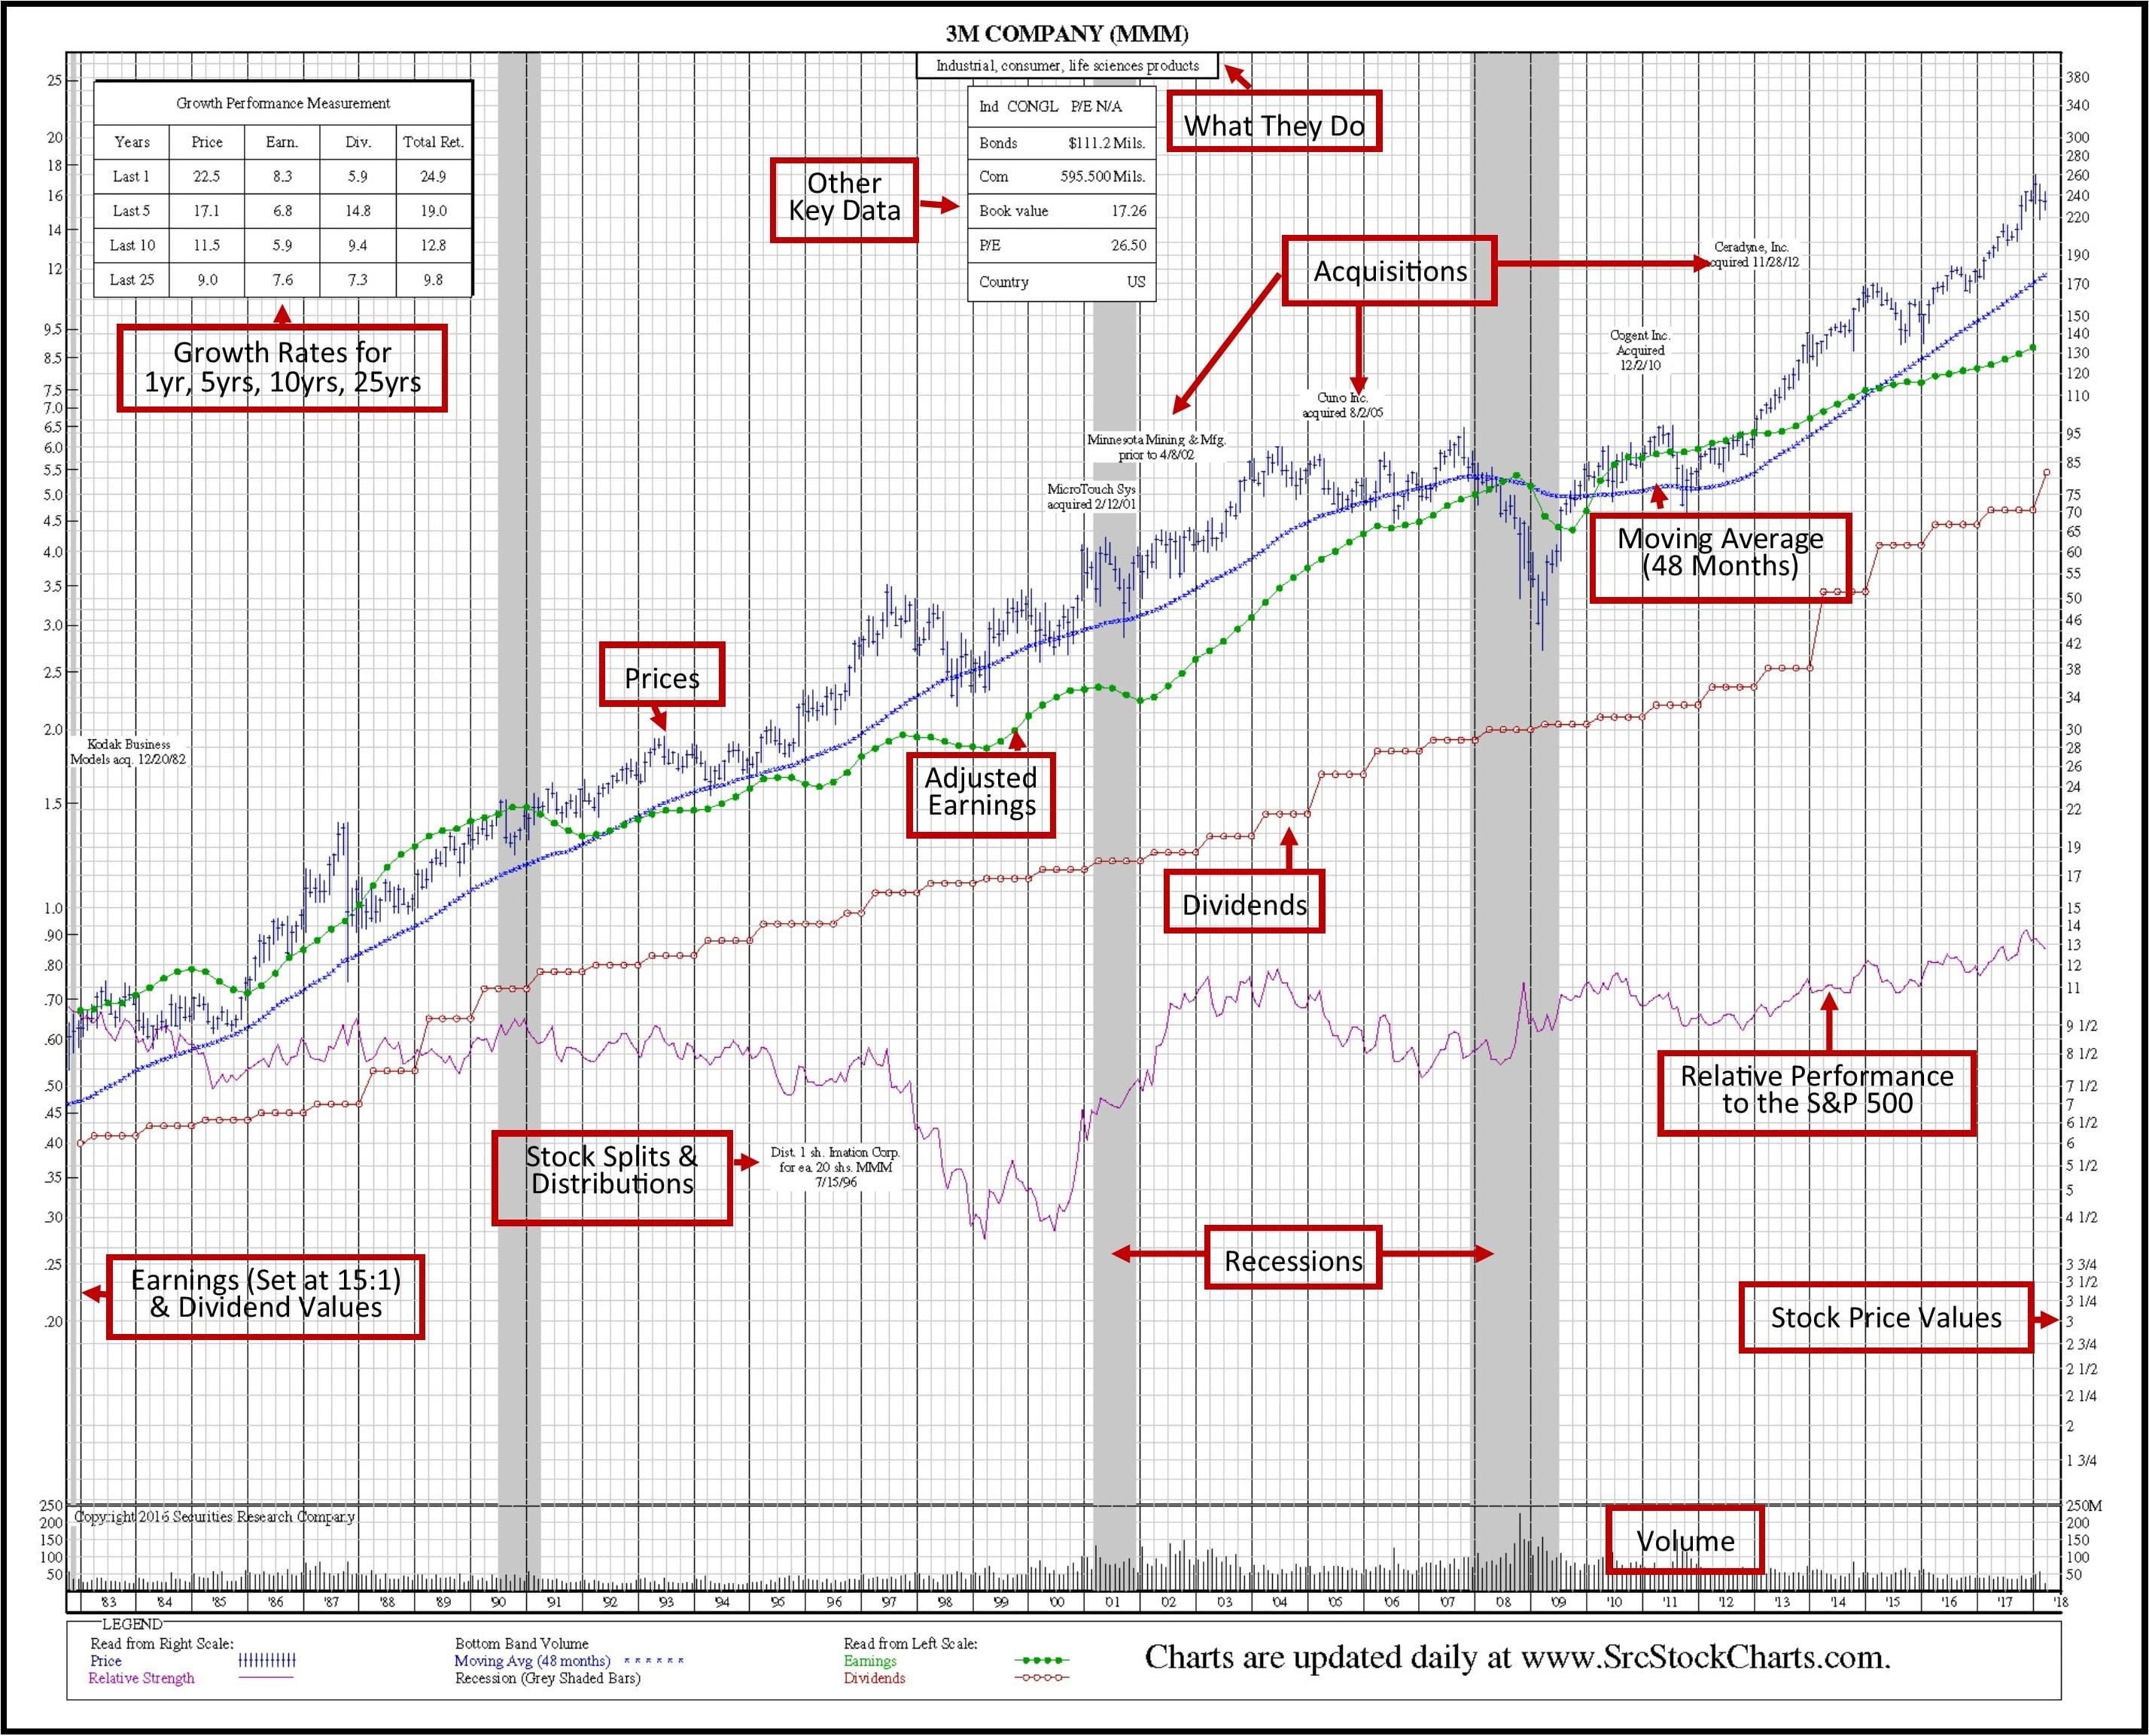 SRC Green Book 35-Year Historical Stock Chart